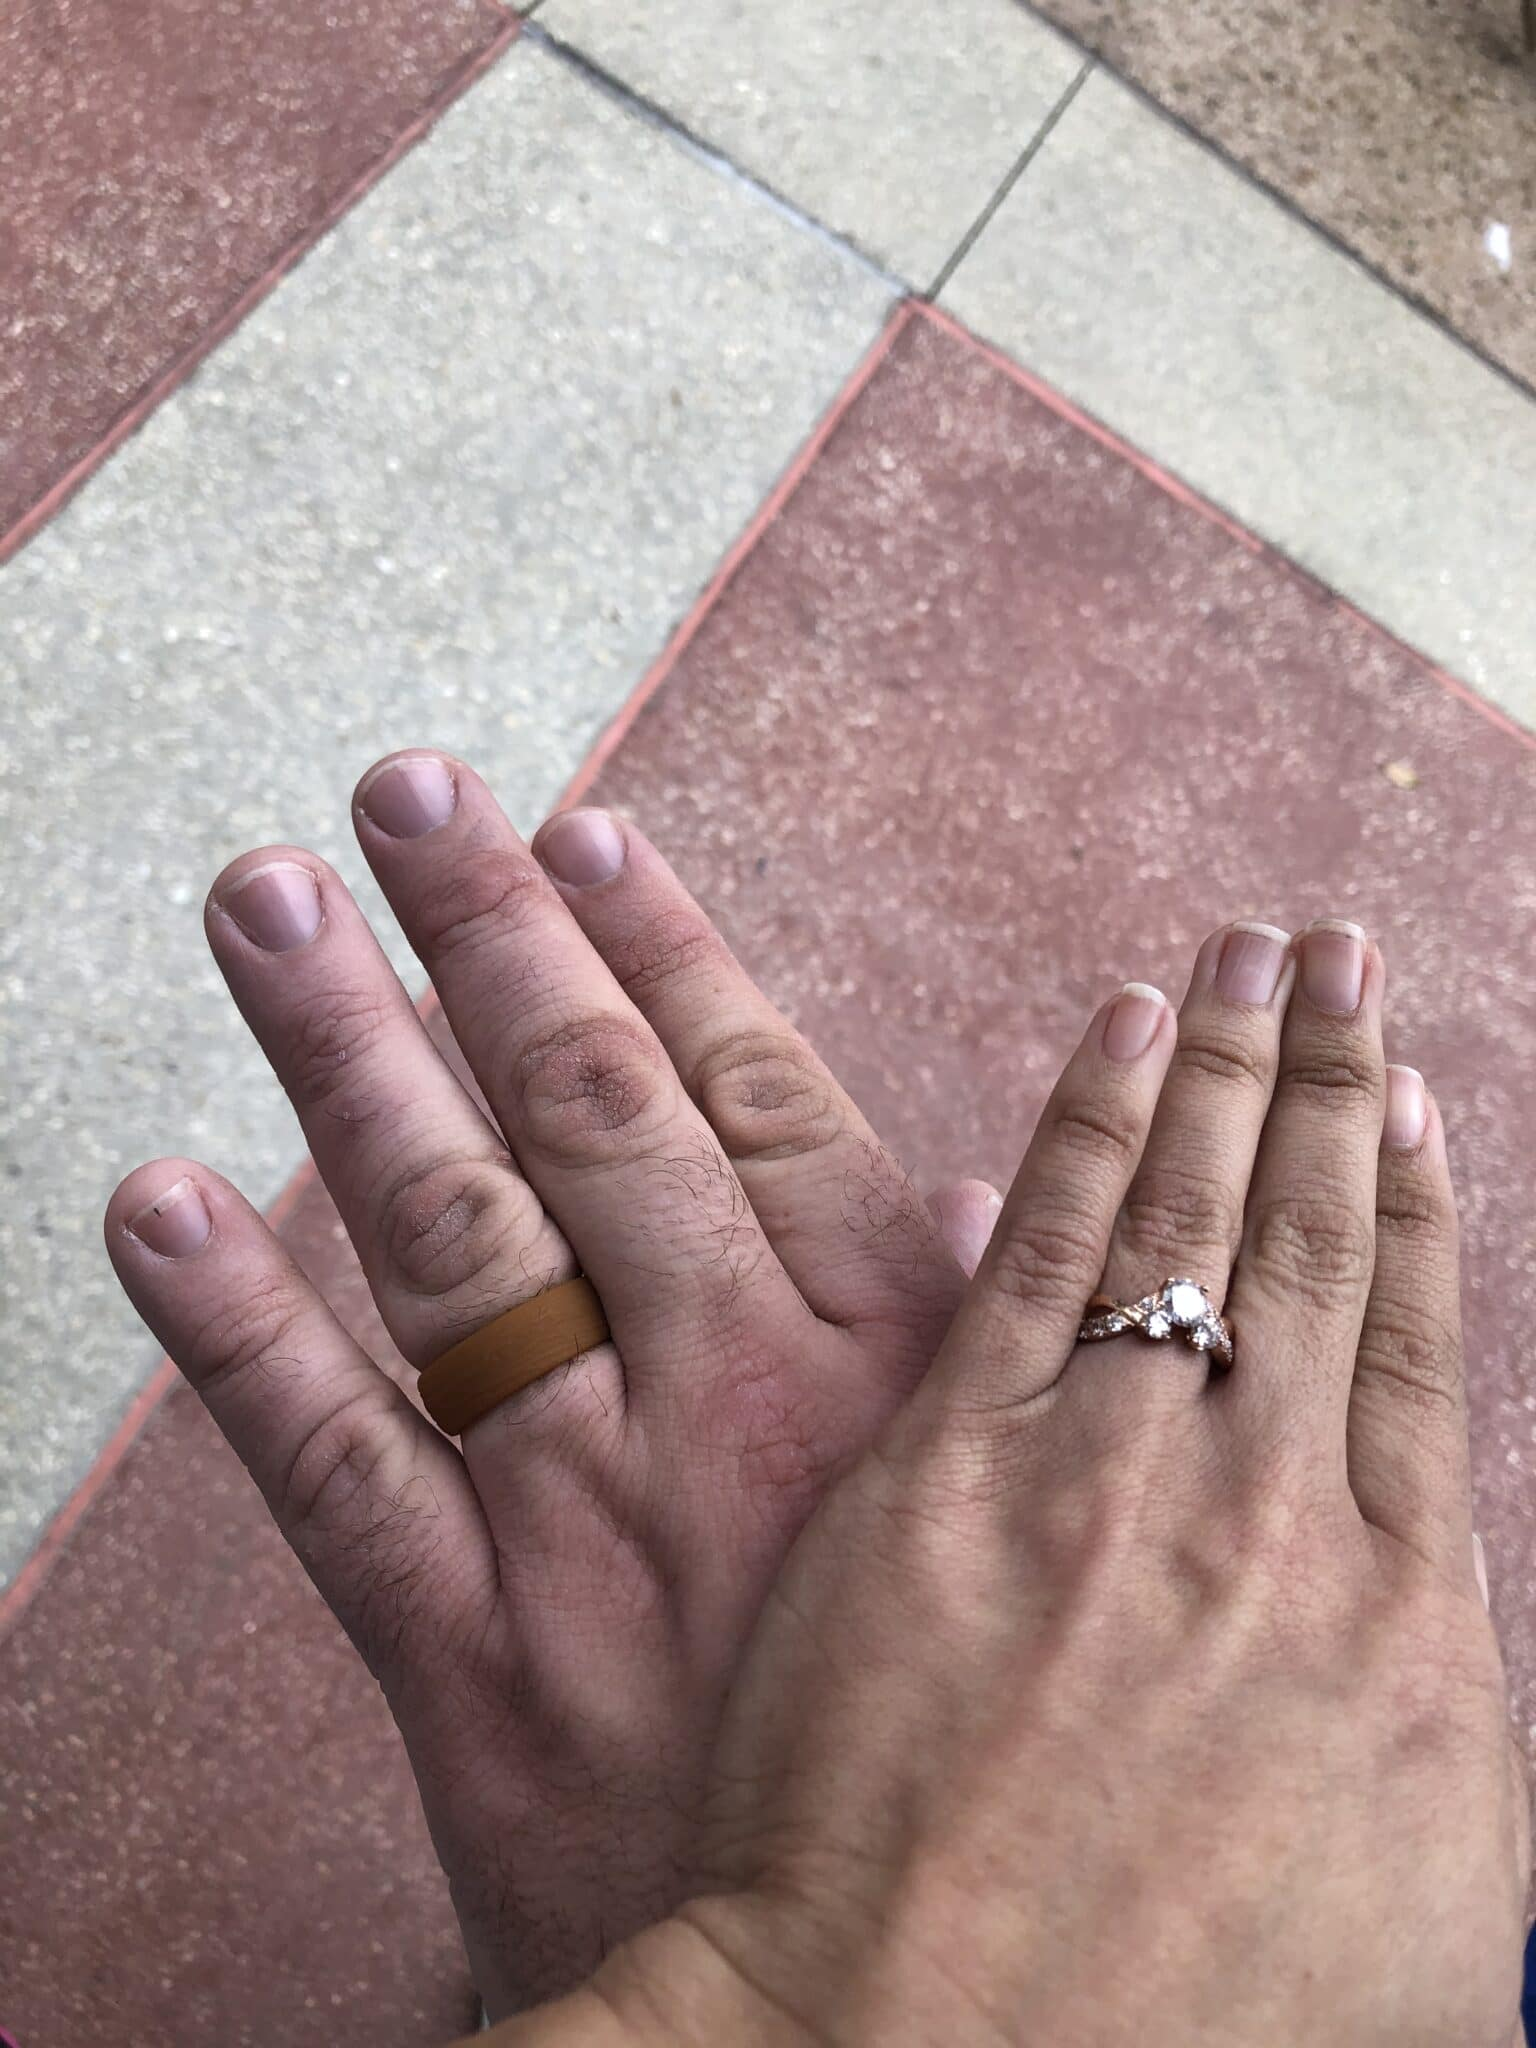 womans hand on top of mans hand both with new rings on fingers after marriage proposal